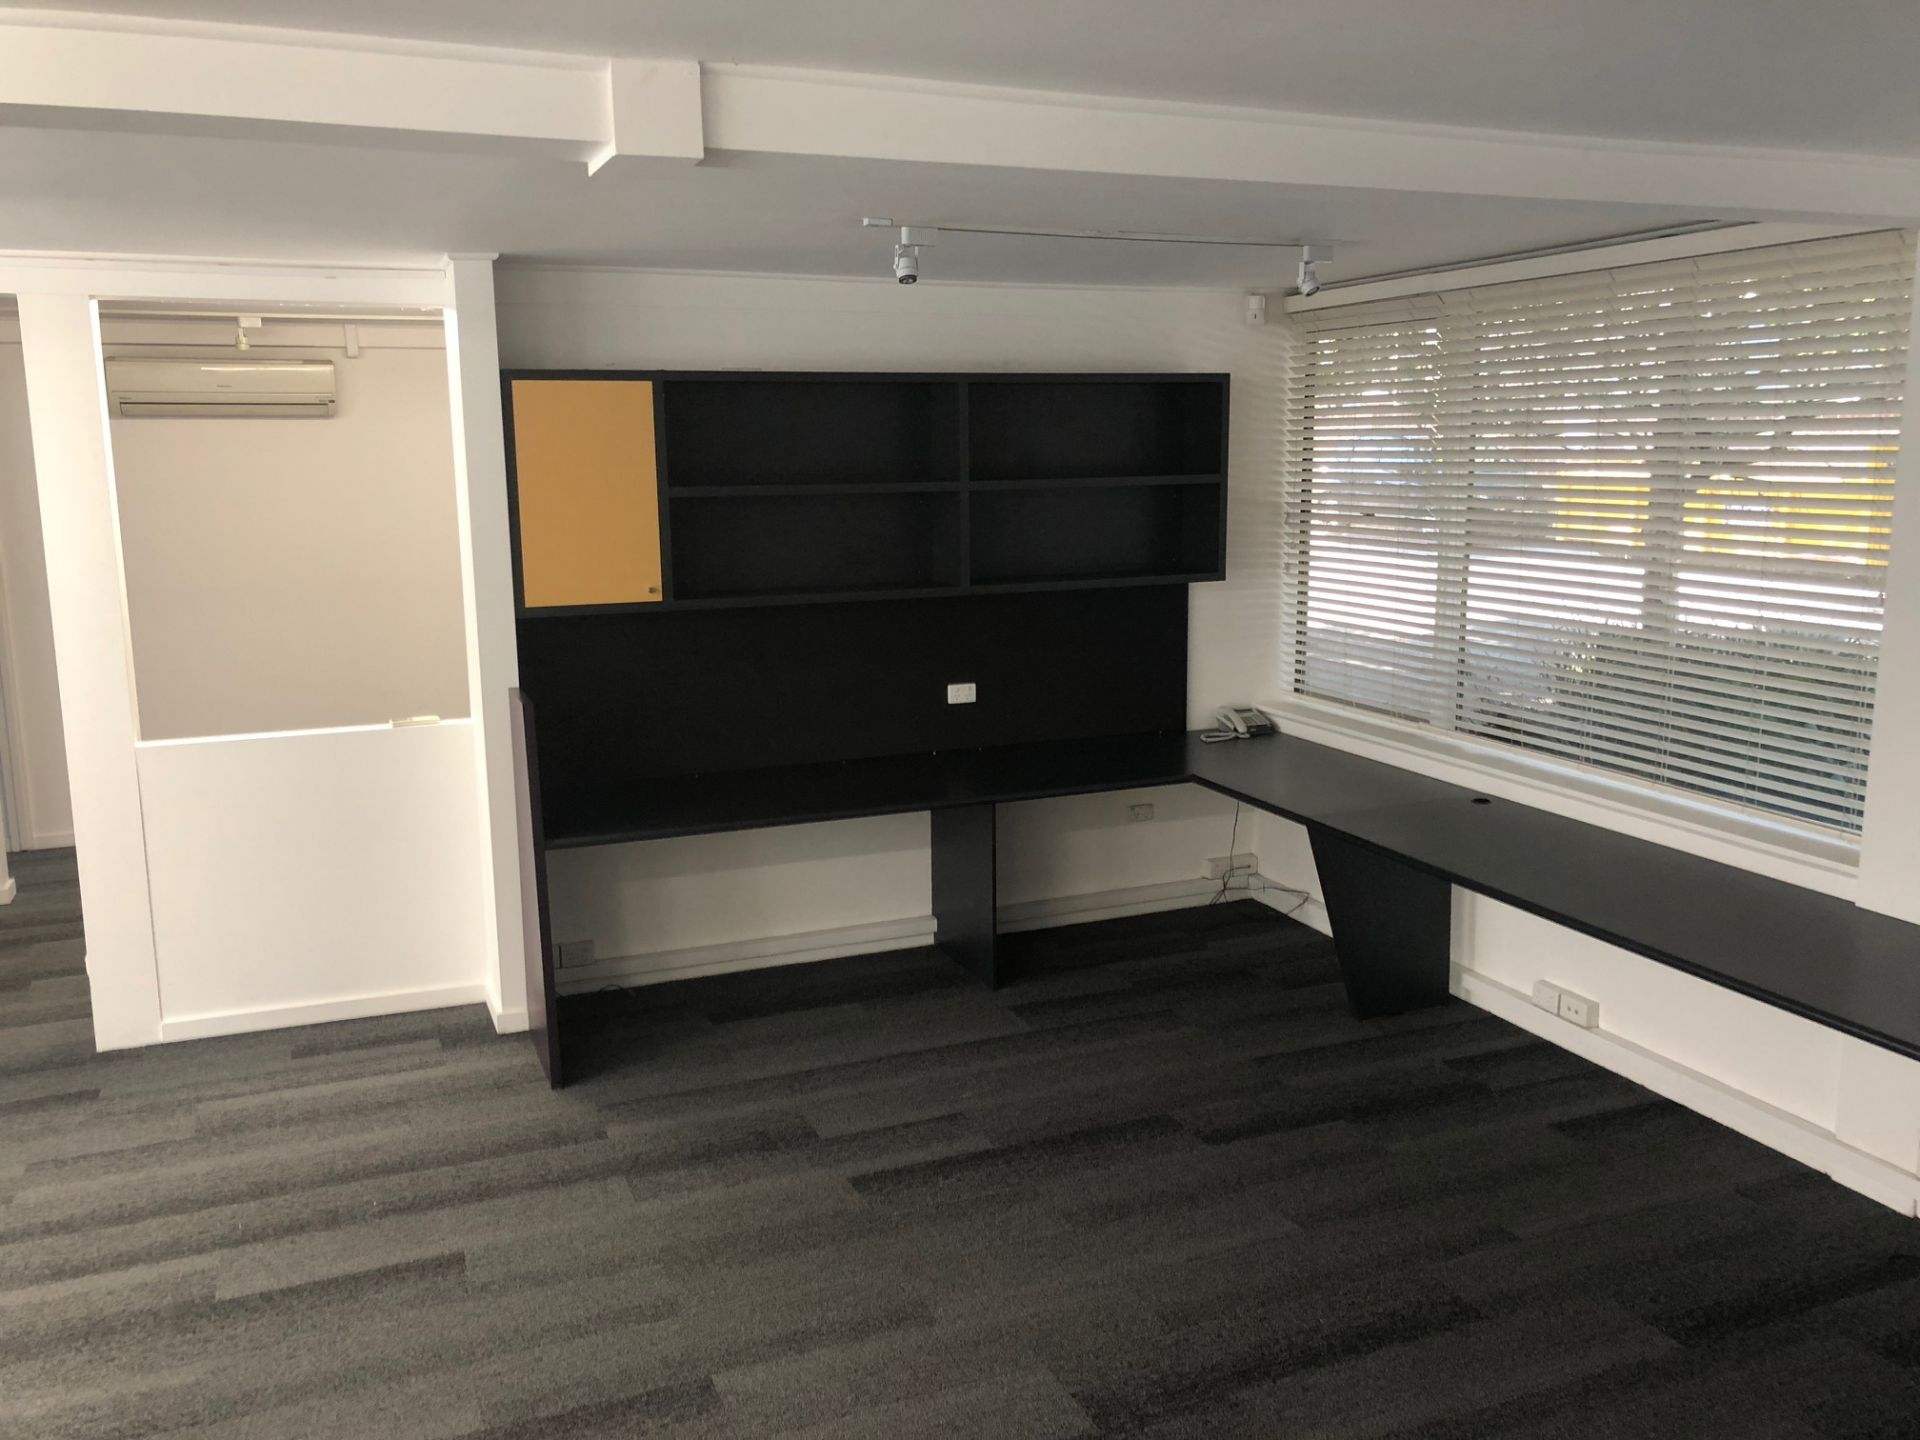 REFURBISHED GROUND FLOOR OFFICE IN THE HEART OF SOUTH YARRA